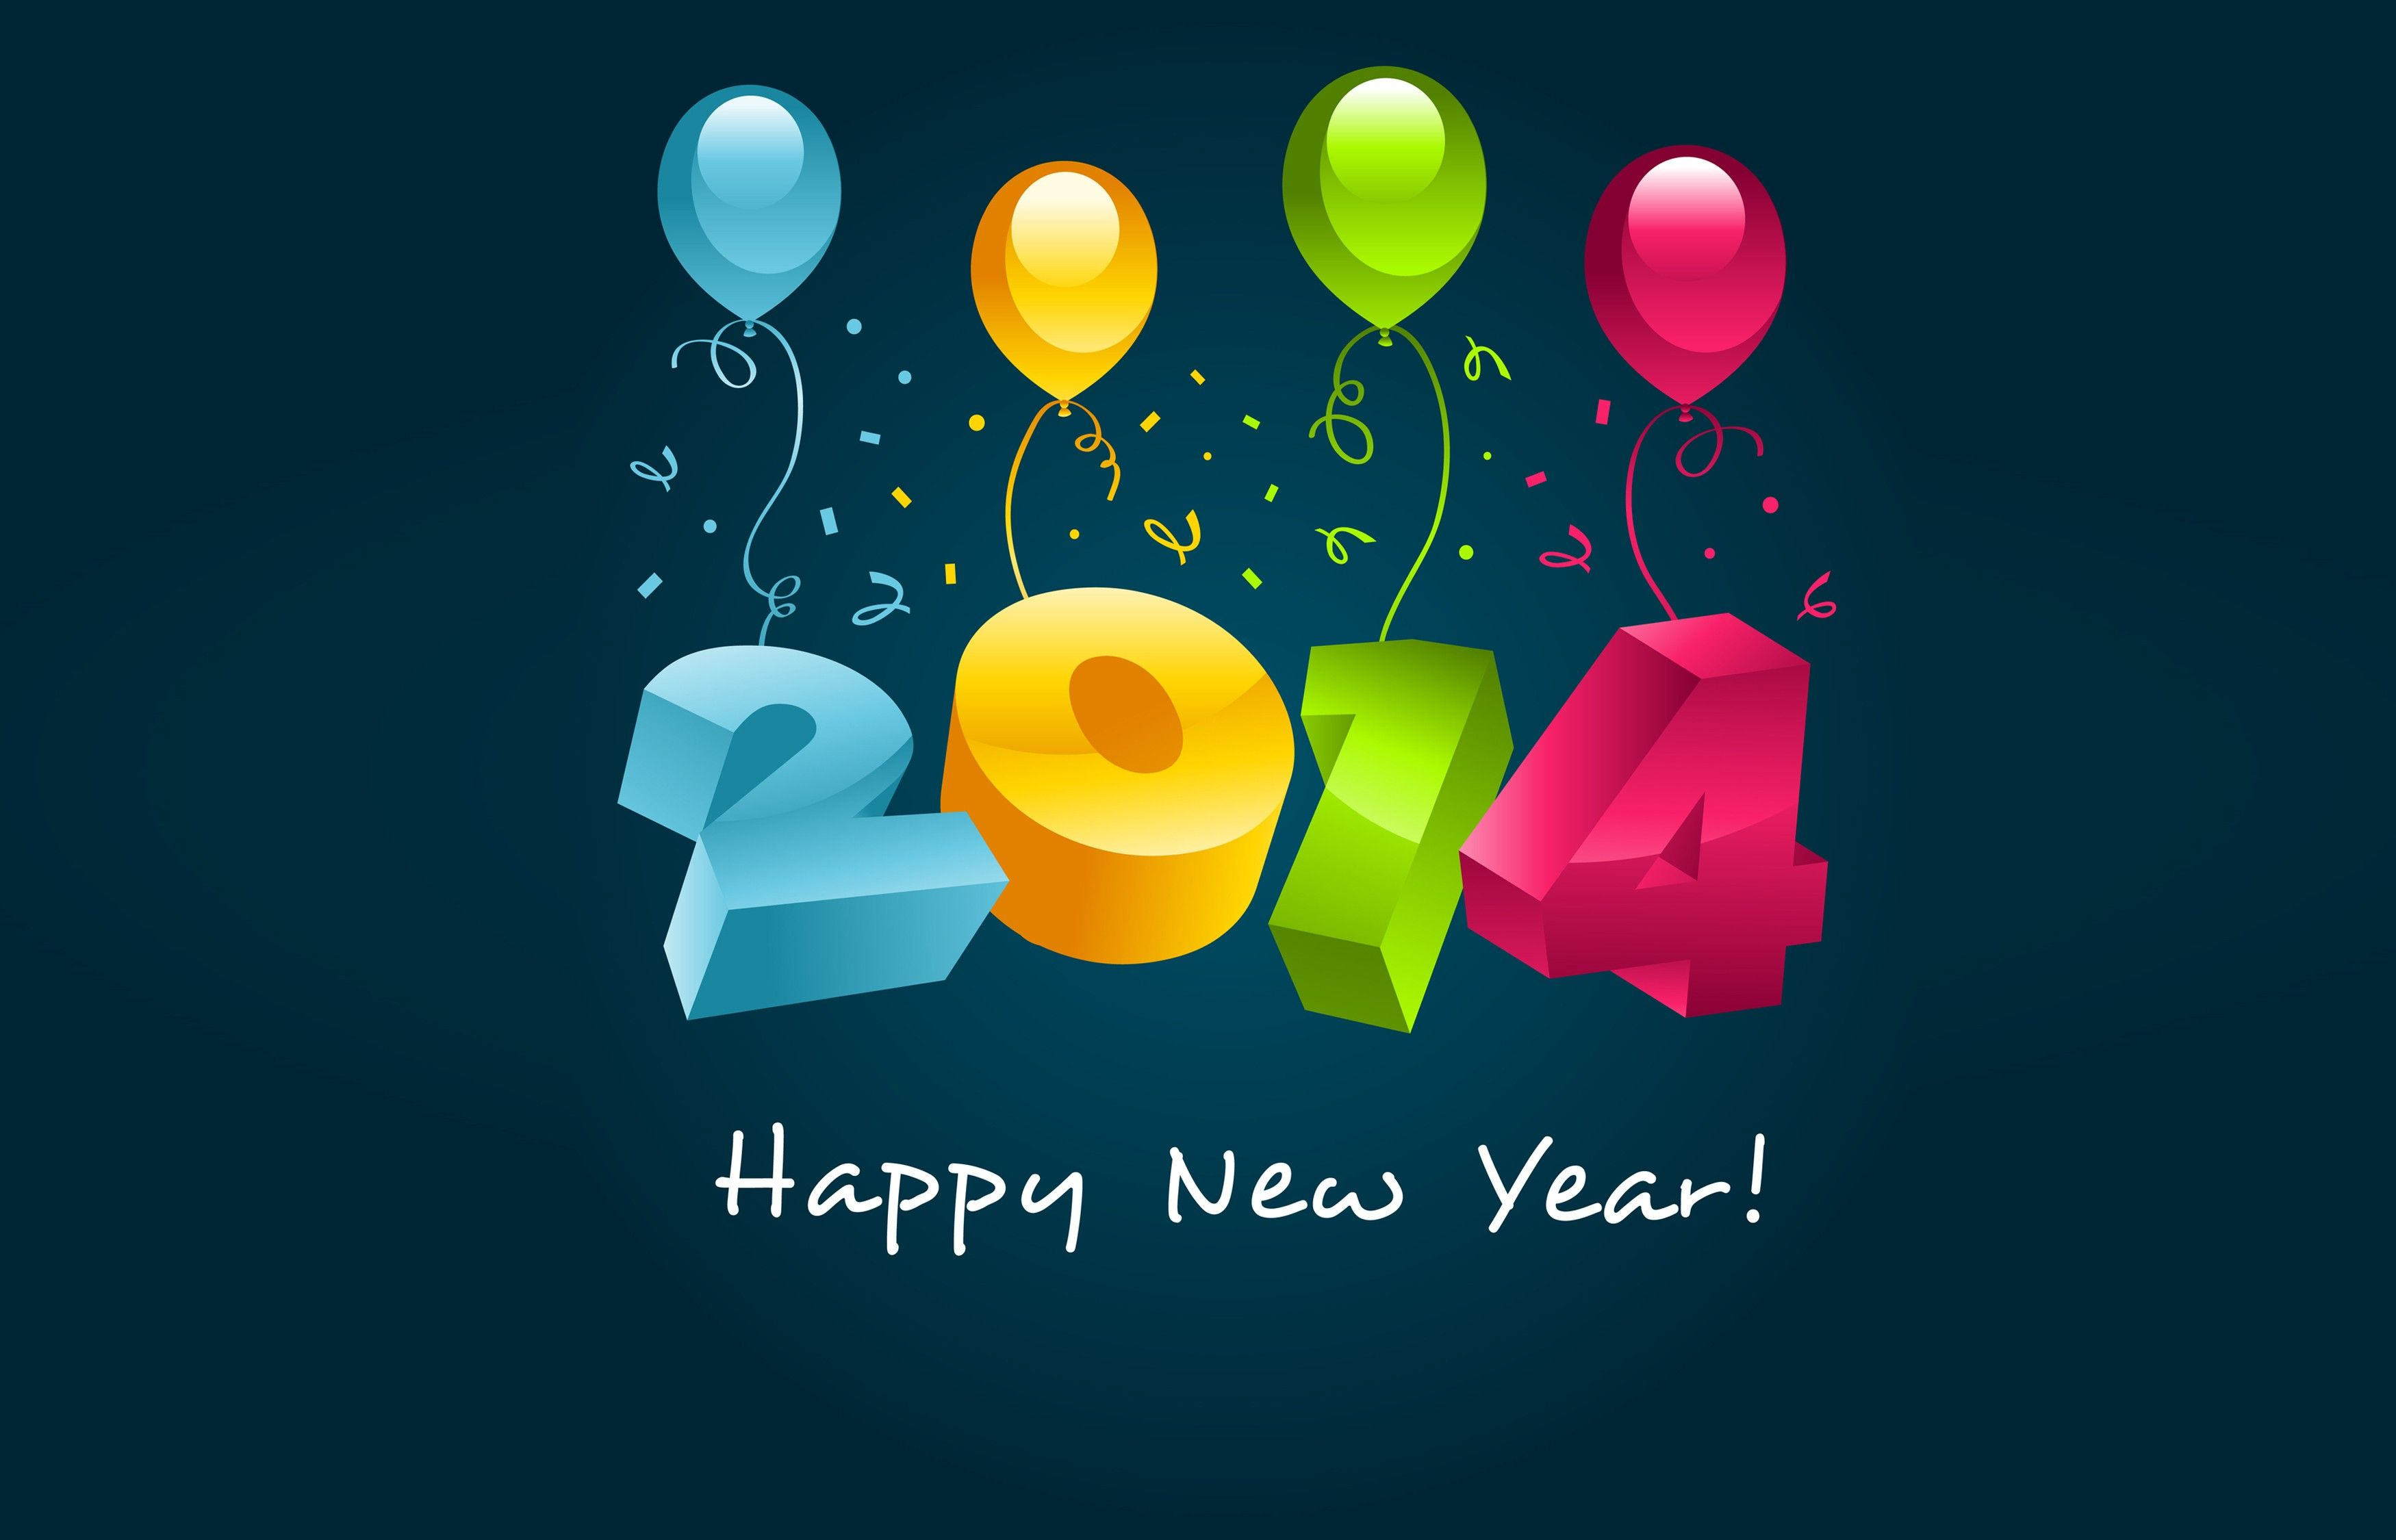 15 high quality happy new year wallpapers 2014 beautiful flowers search results for happy new year 2014 hd wallpaper adorable wallpapers voltagebd Image collections